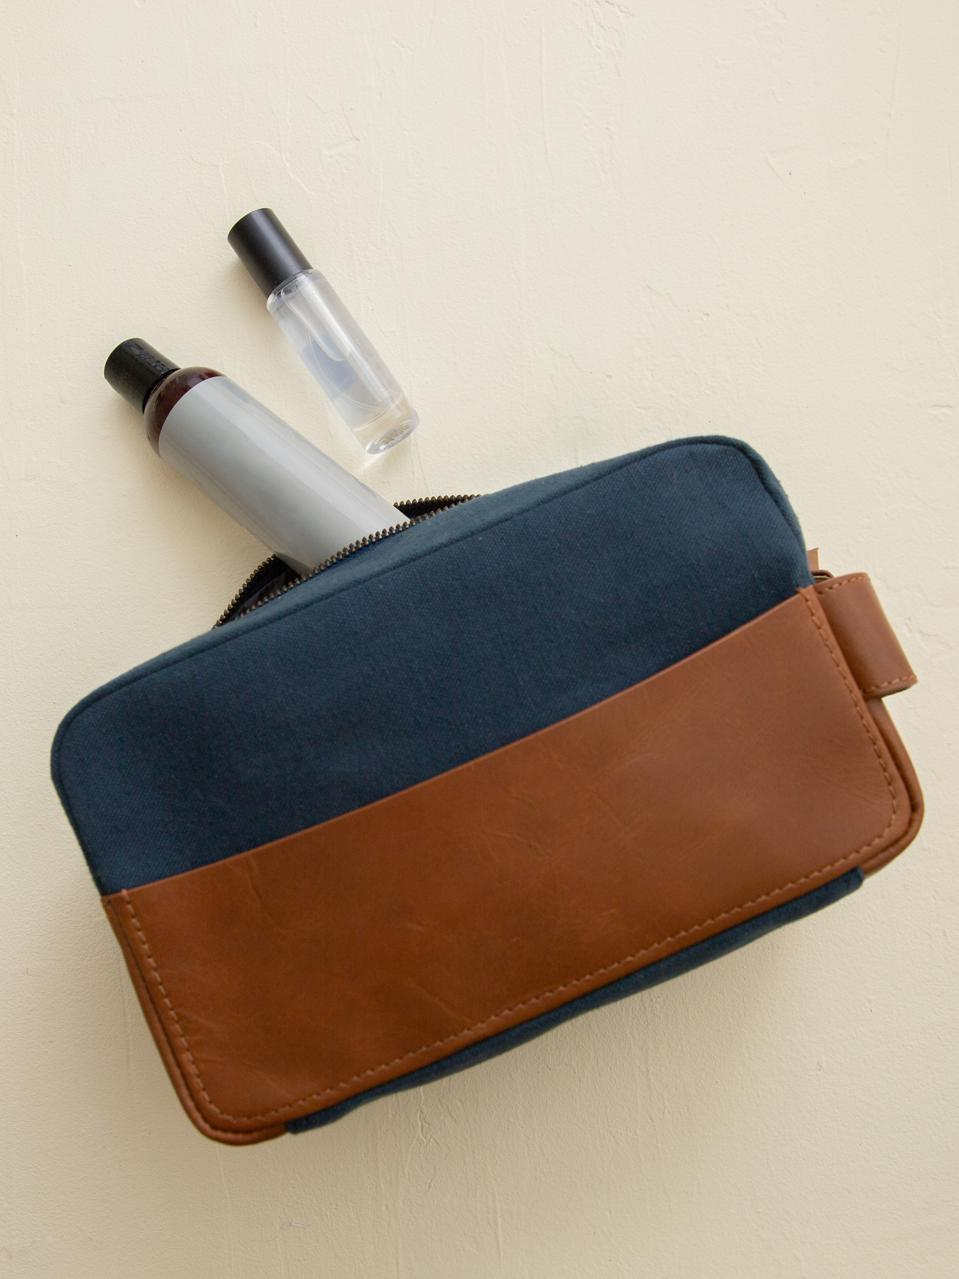 A stylish way to keep your toiletries whether you're traveling or not.